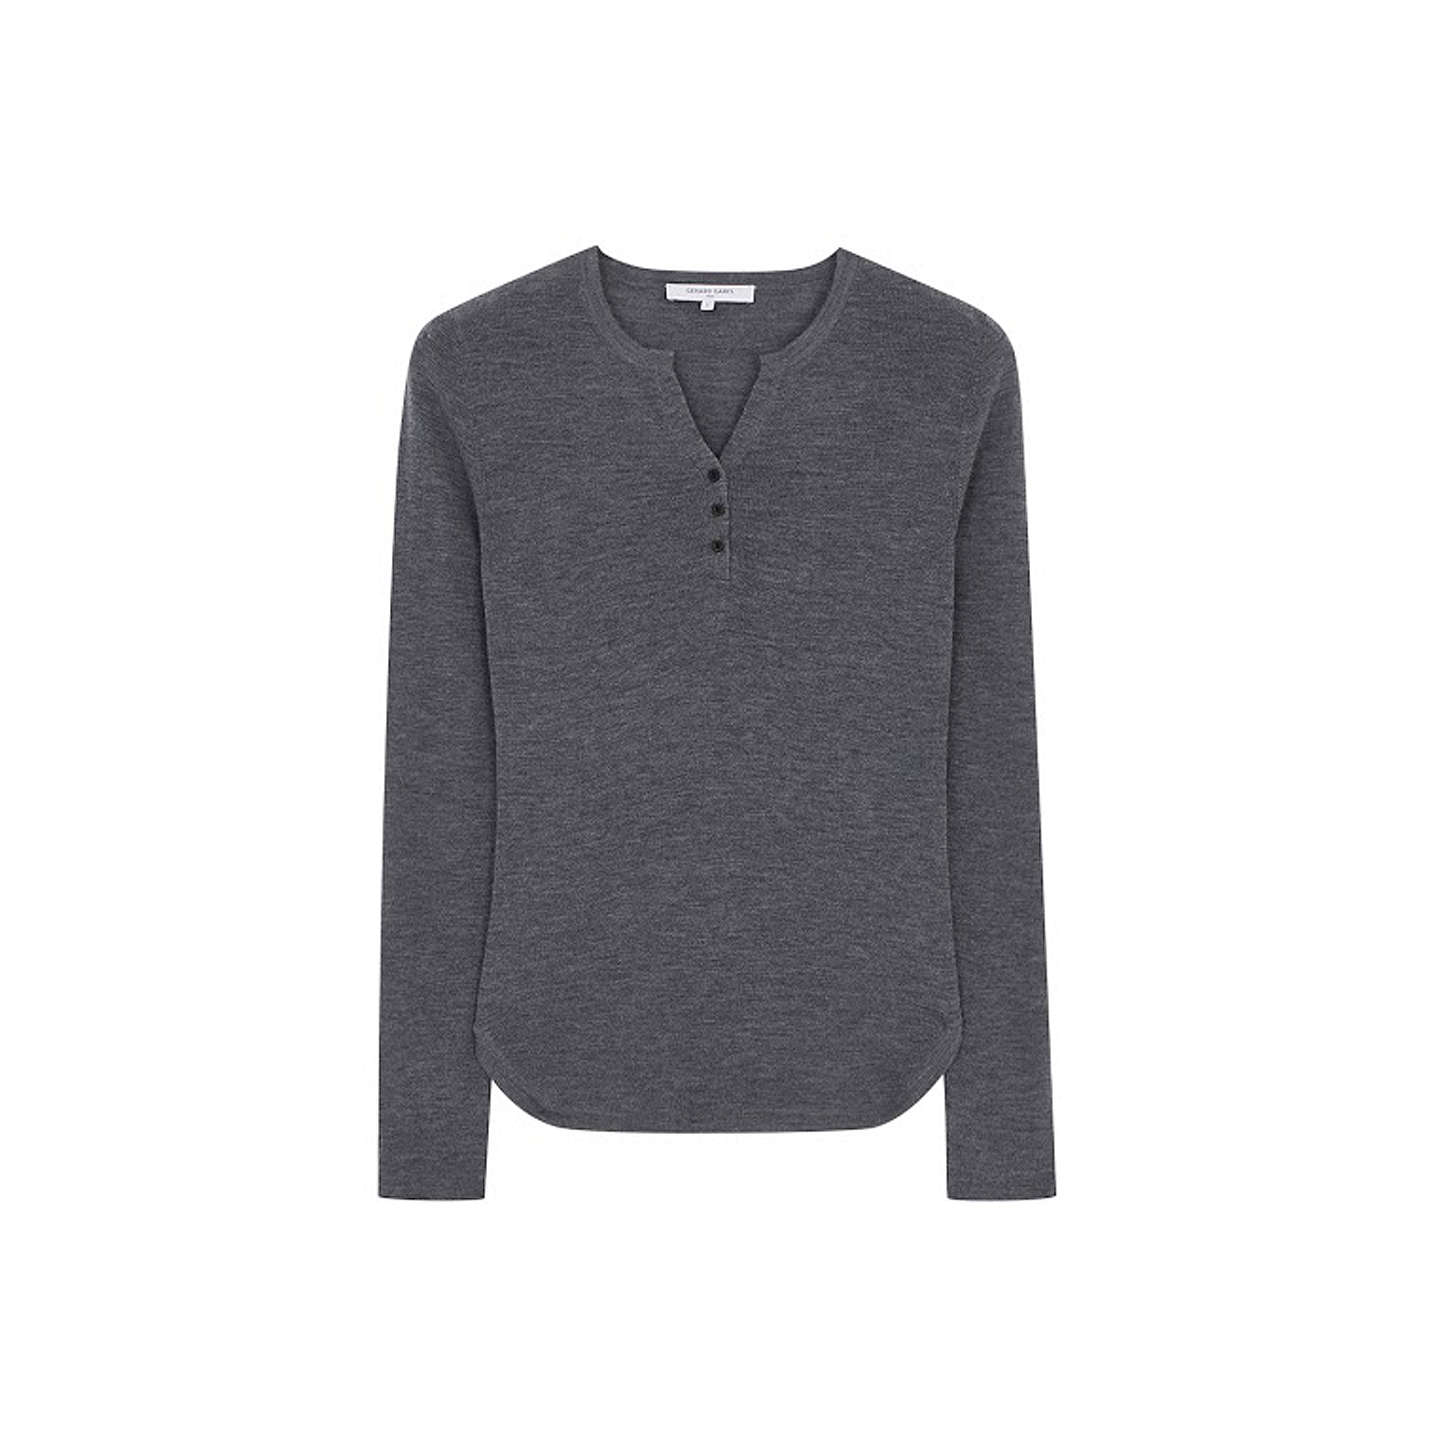 BuyGerard Darel V-Neck Wool Pullover T-Shirt, Grey, 8-10 Online at johnlewis.com